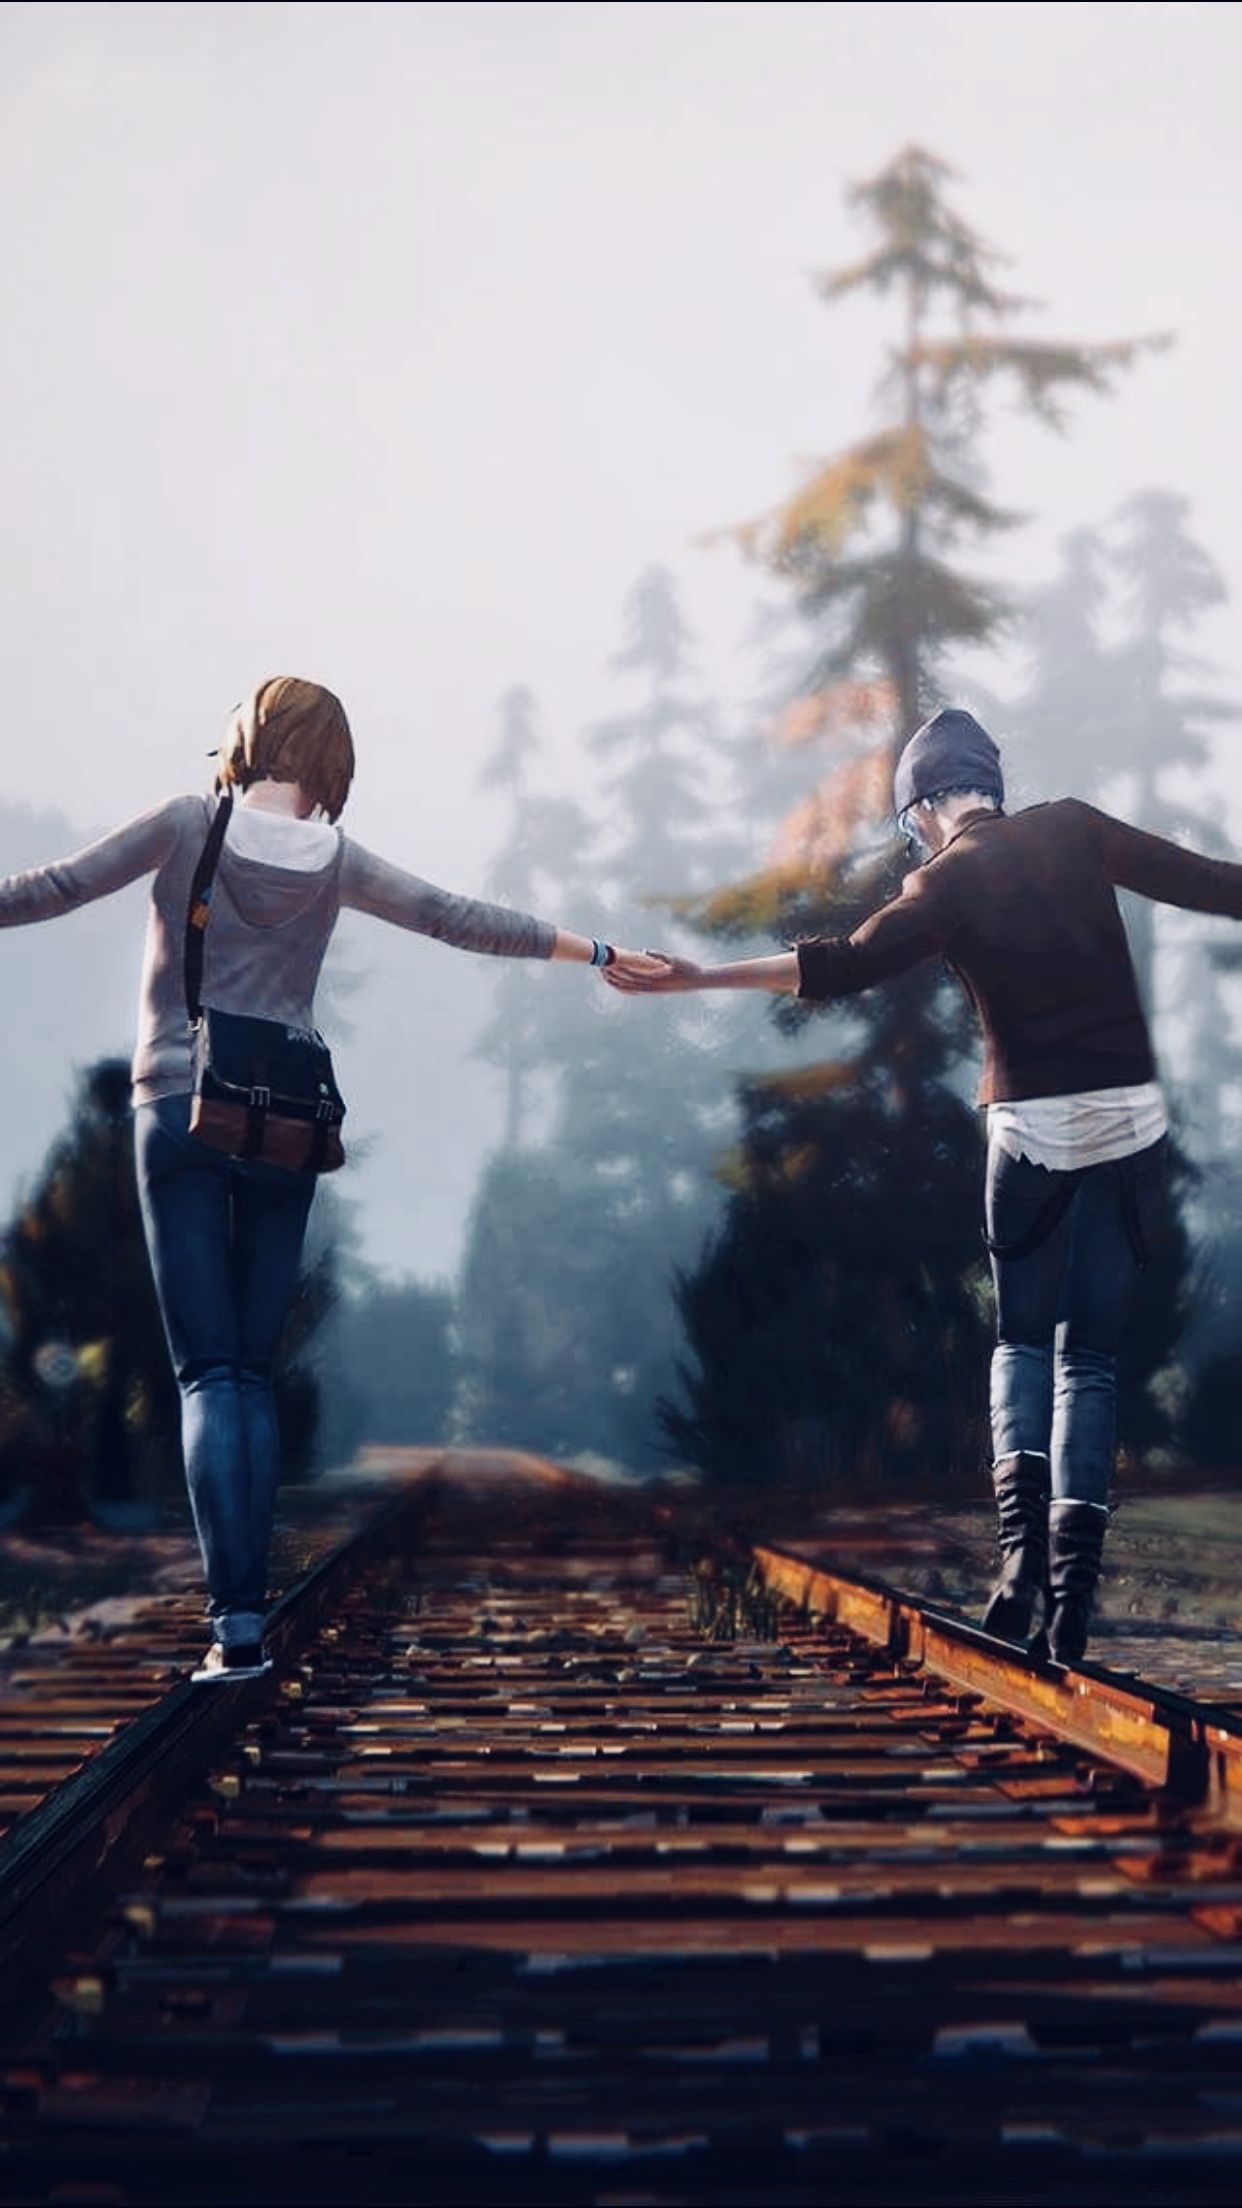 Pin By Hannah On Video Games Life Is Strange Life Is Strange